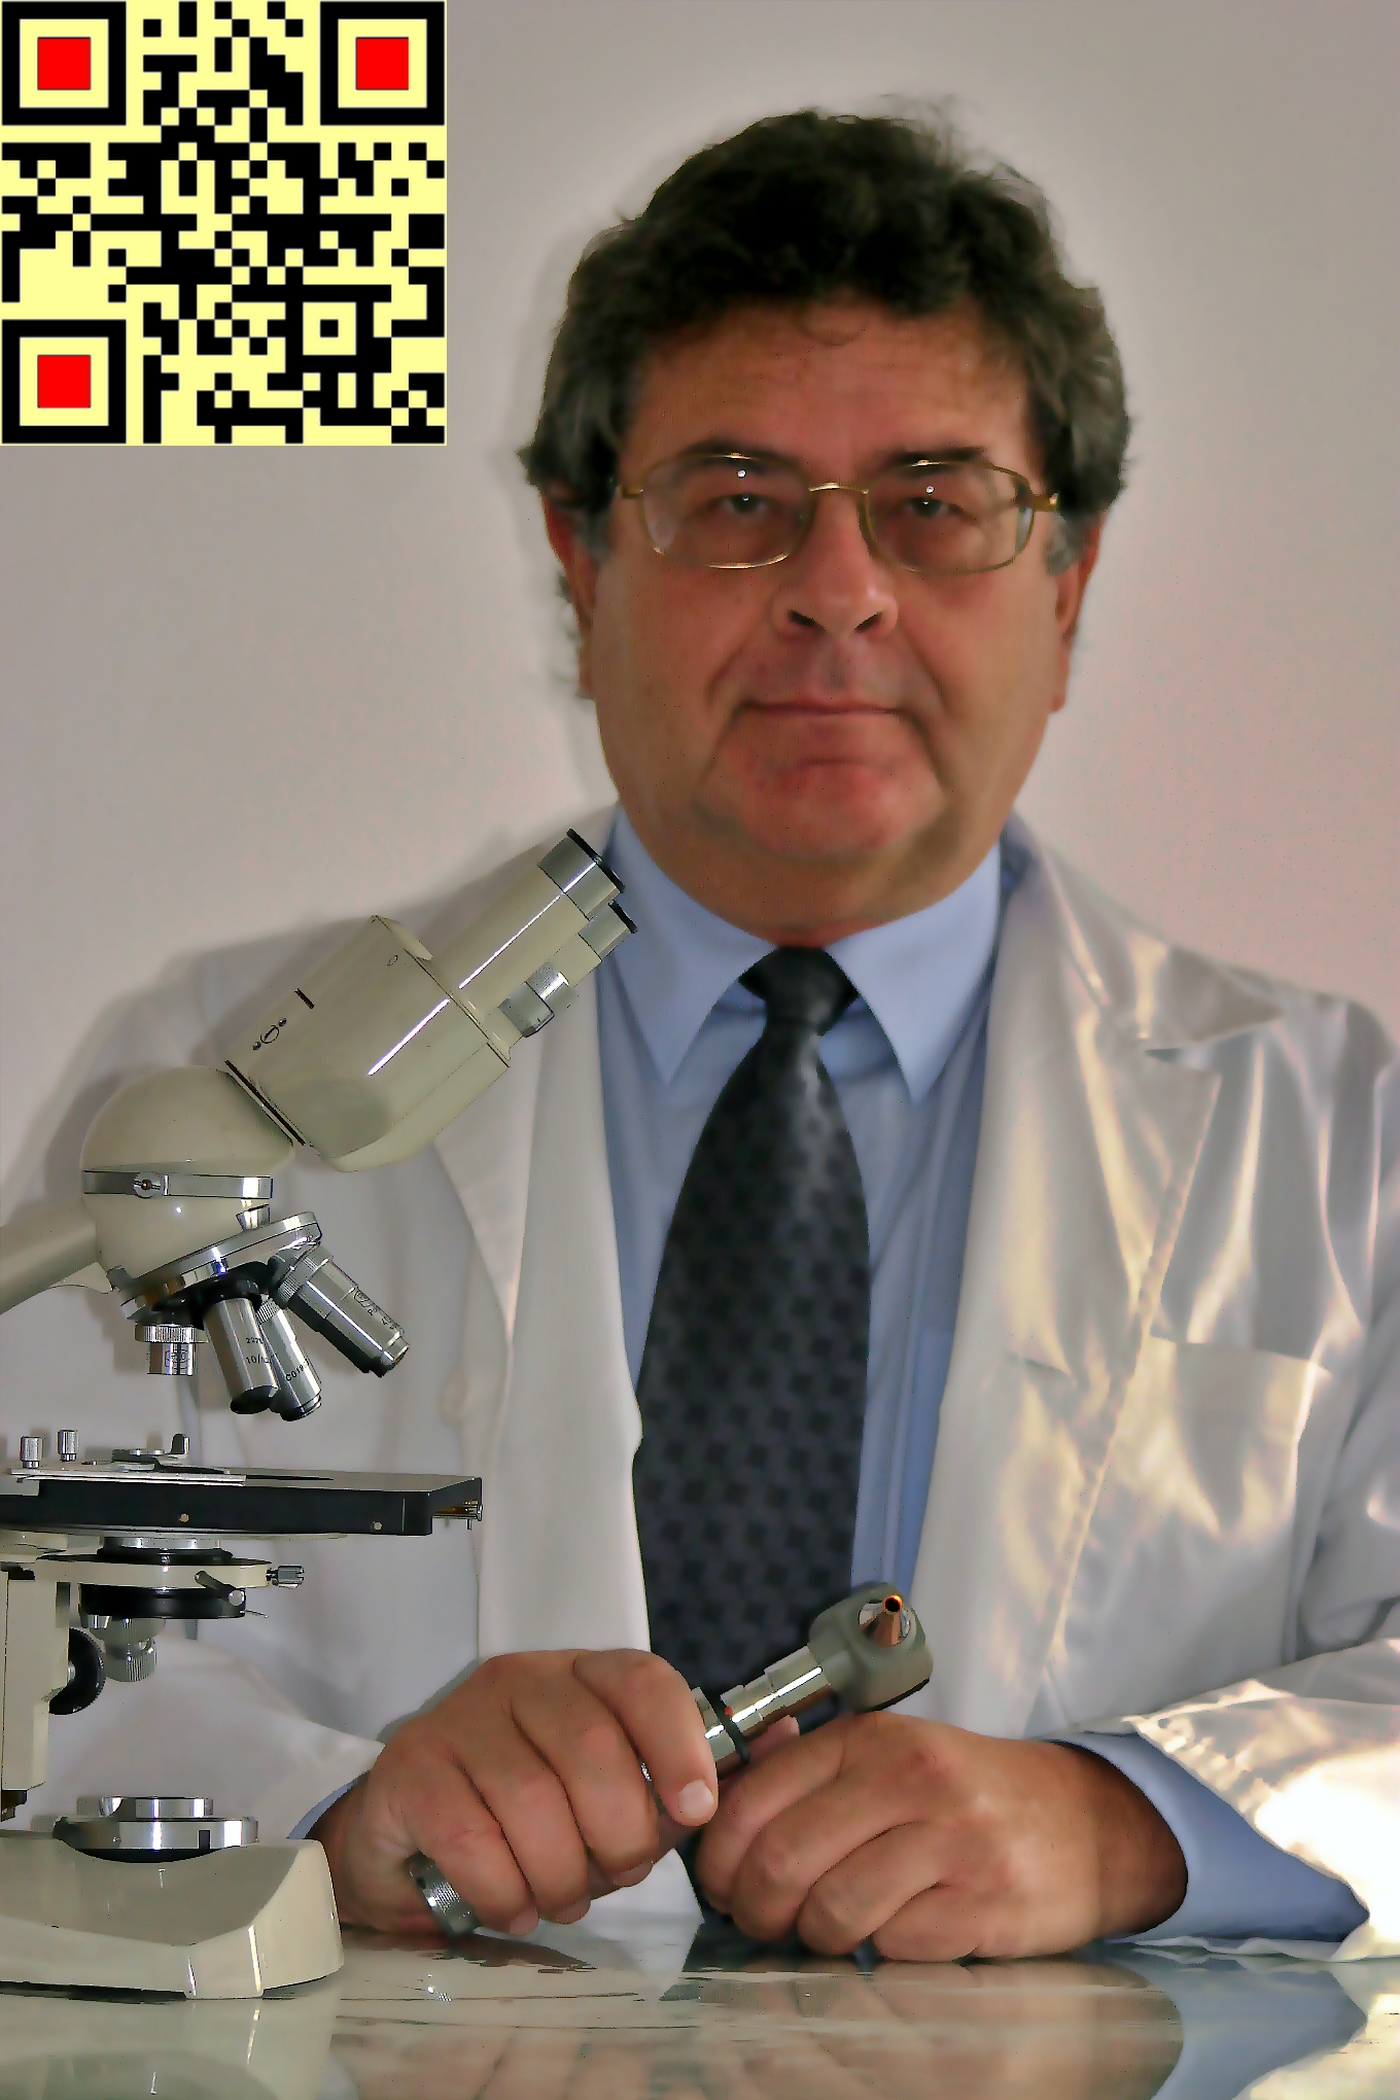 dr Z Halat, MD, medical epidemiology consultant, noxologist